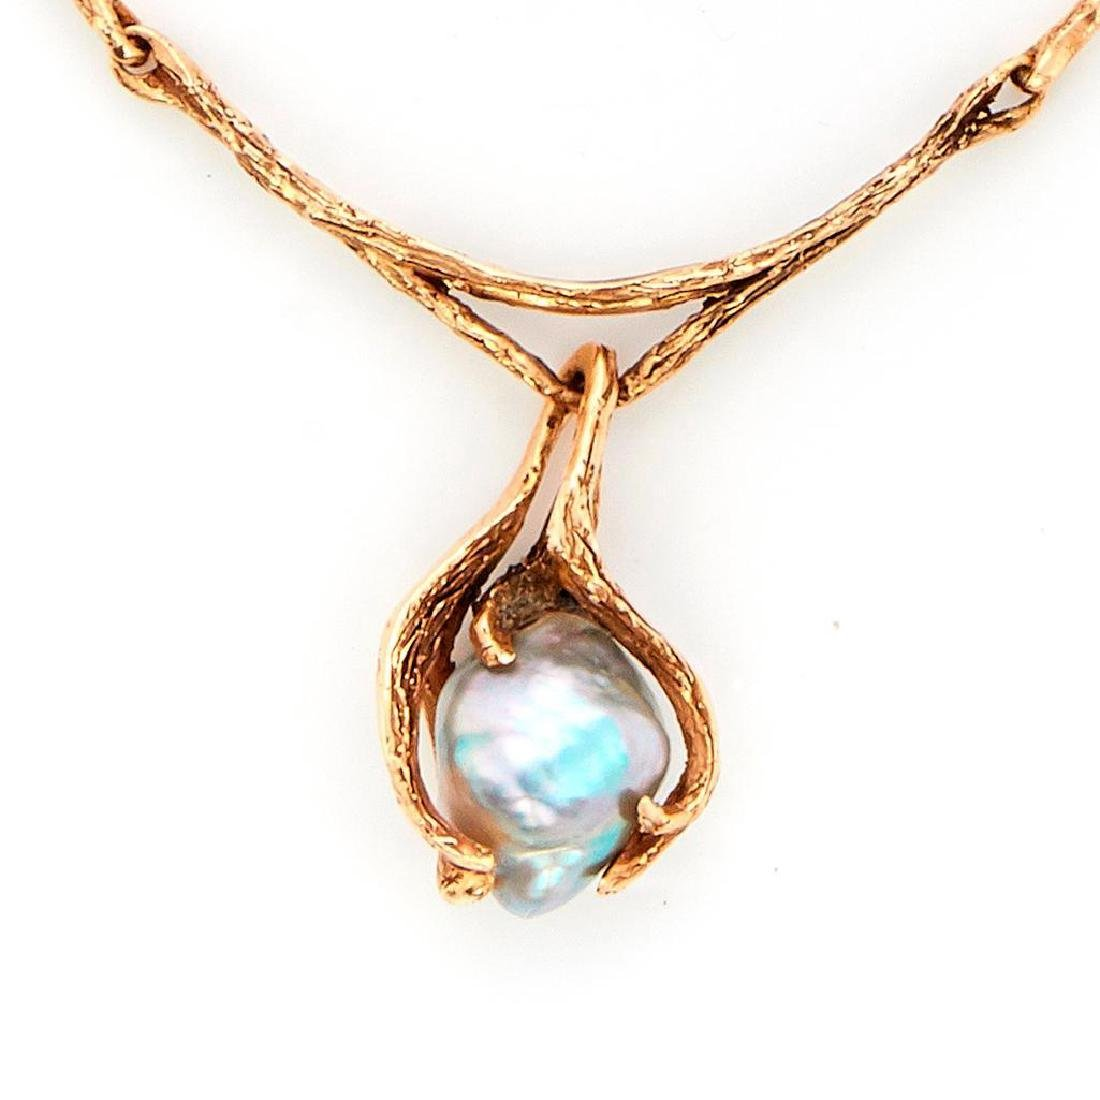 Baroque cultured pearl and 14k gold necklace